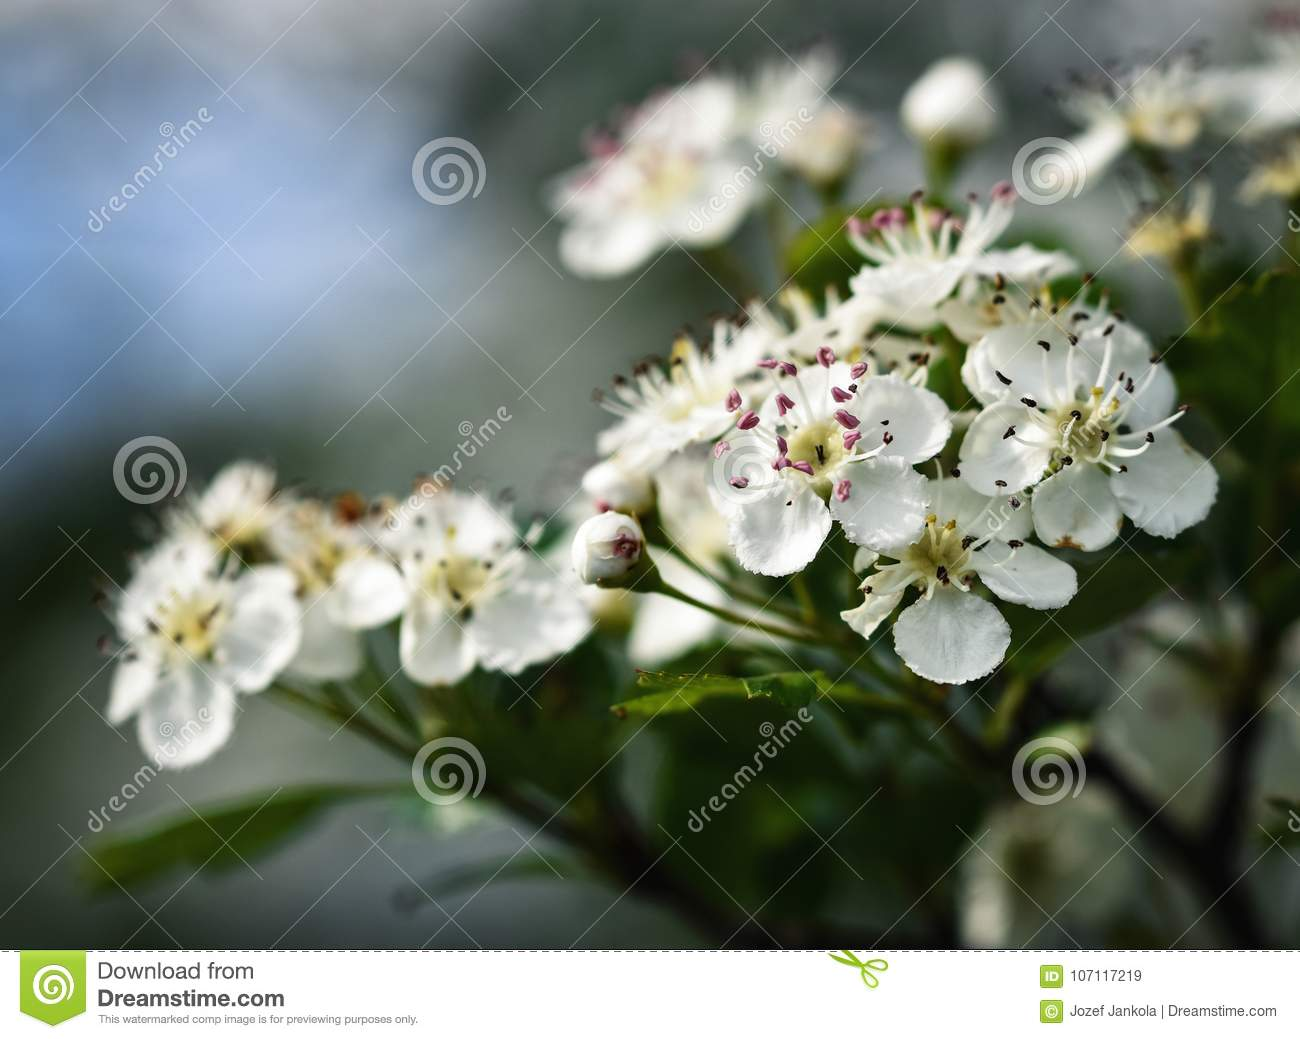 White Hawthorn Flowers Stock Image Image Of Blossom 107117219